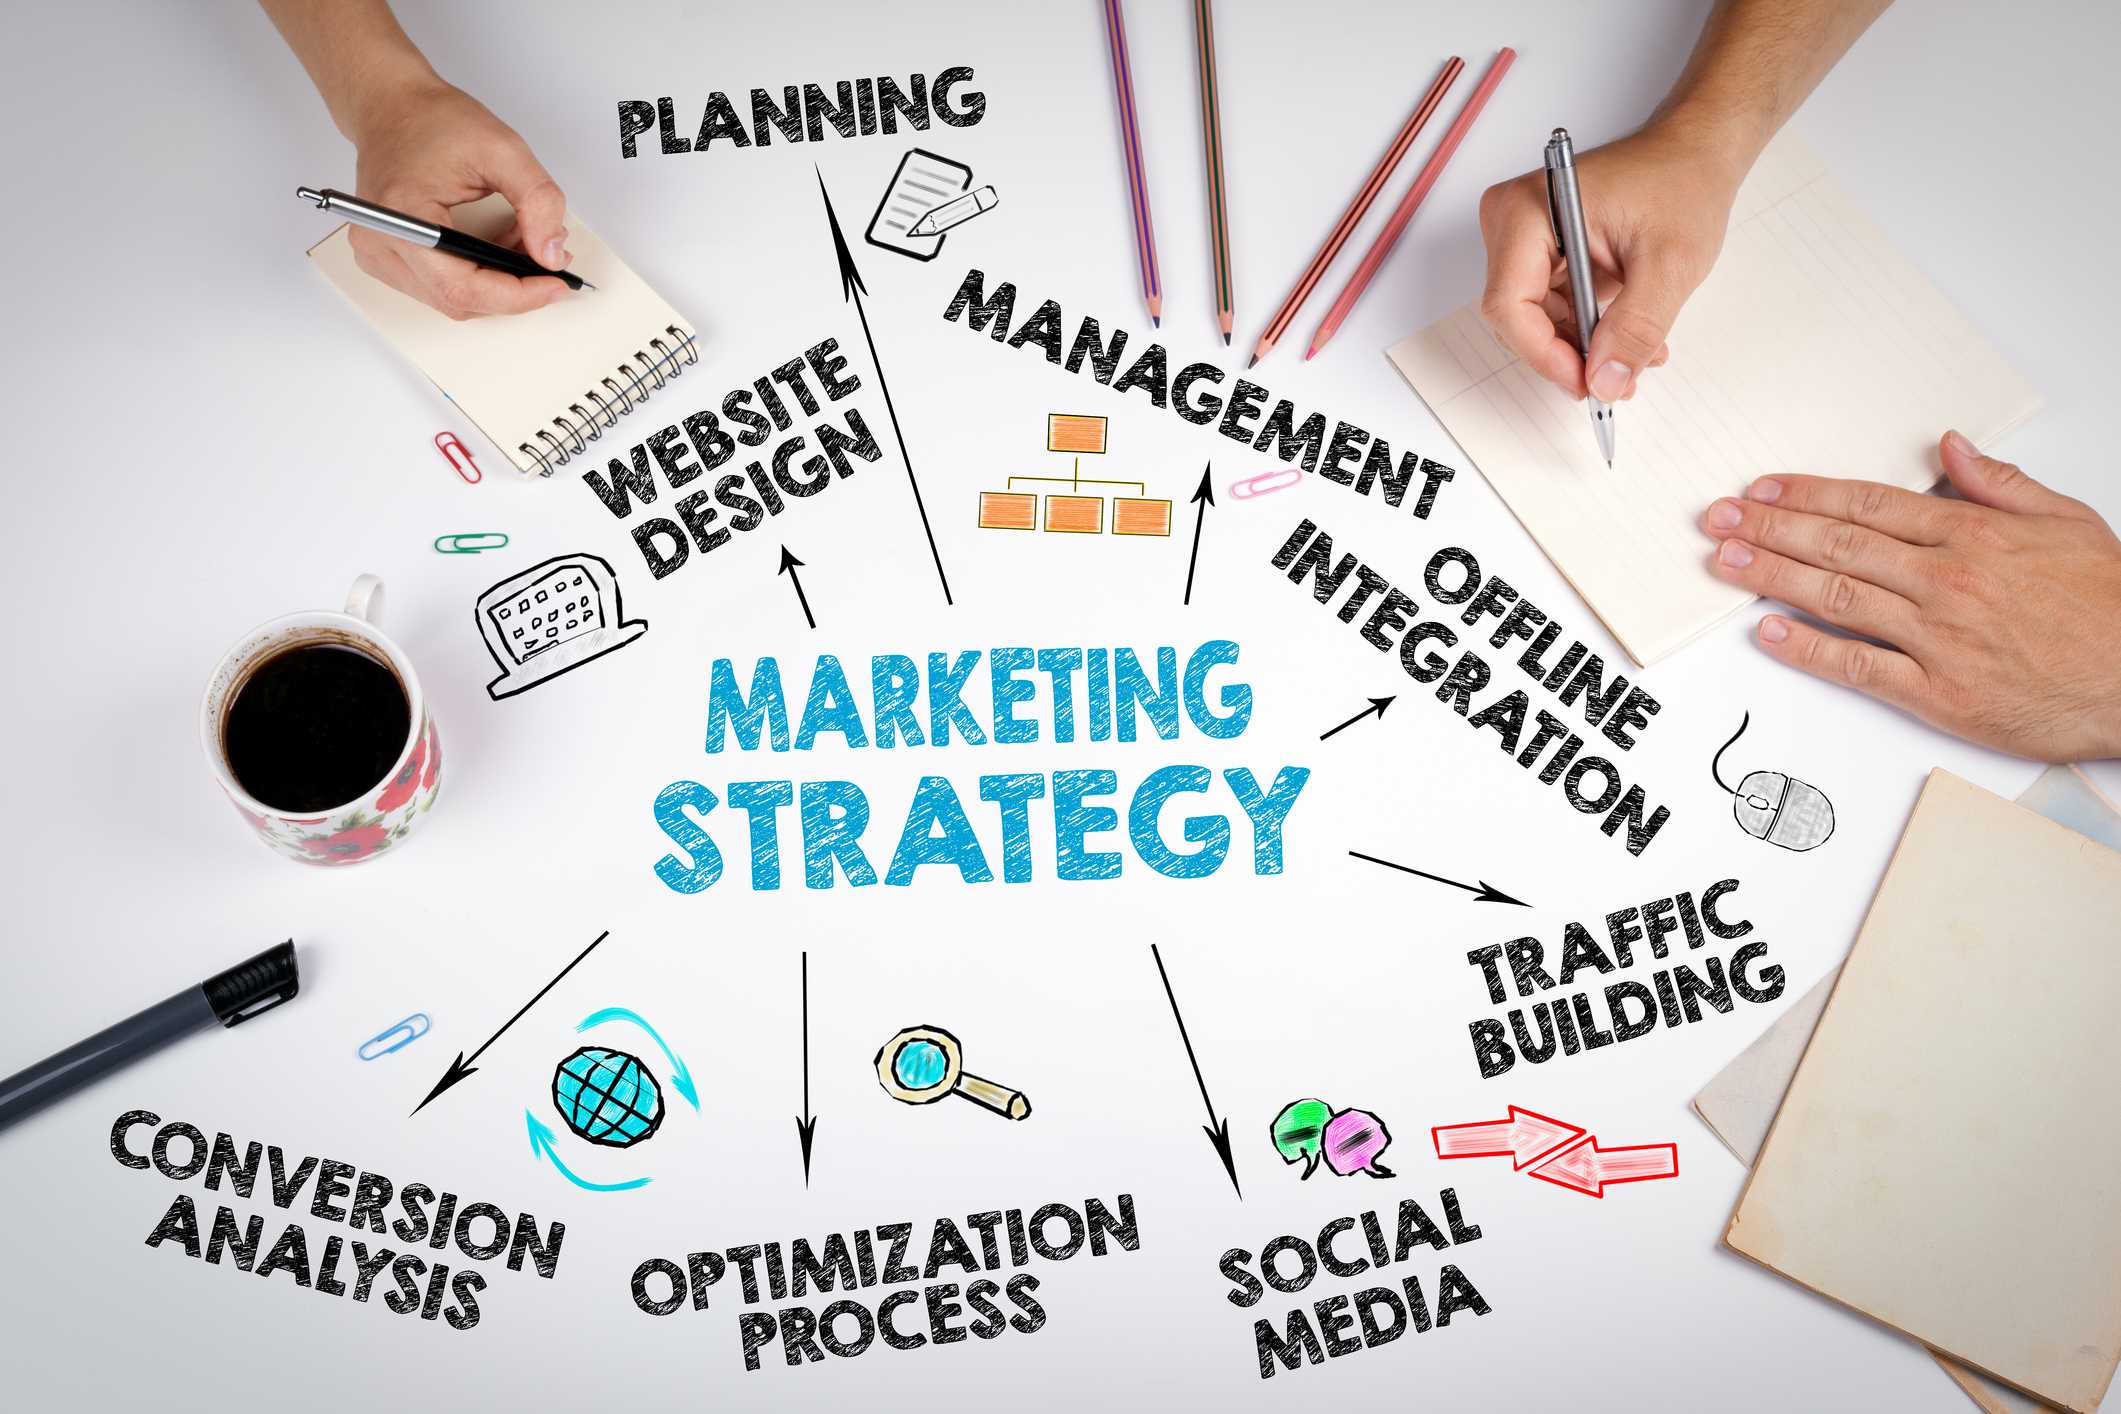 7 top tips on some simple marketing to help you market your business